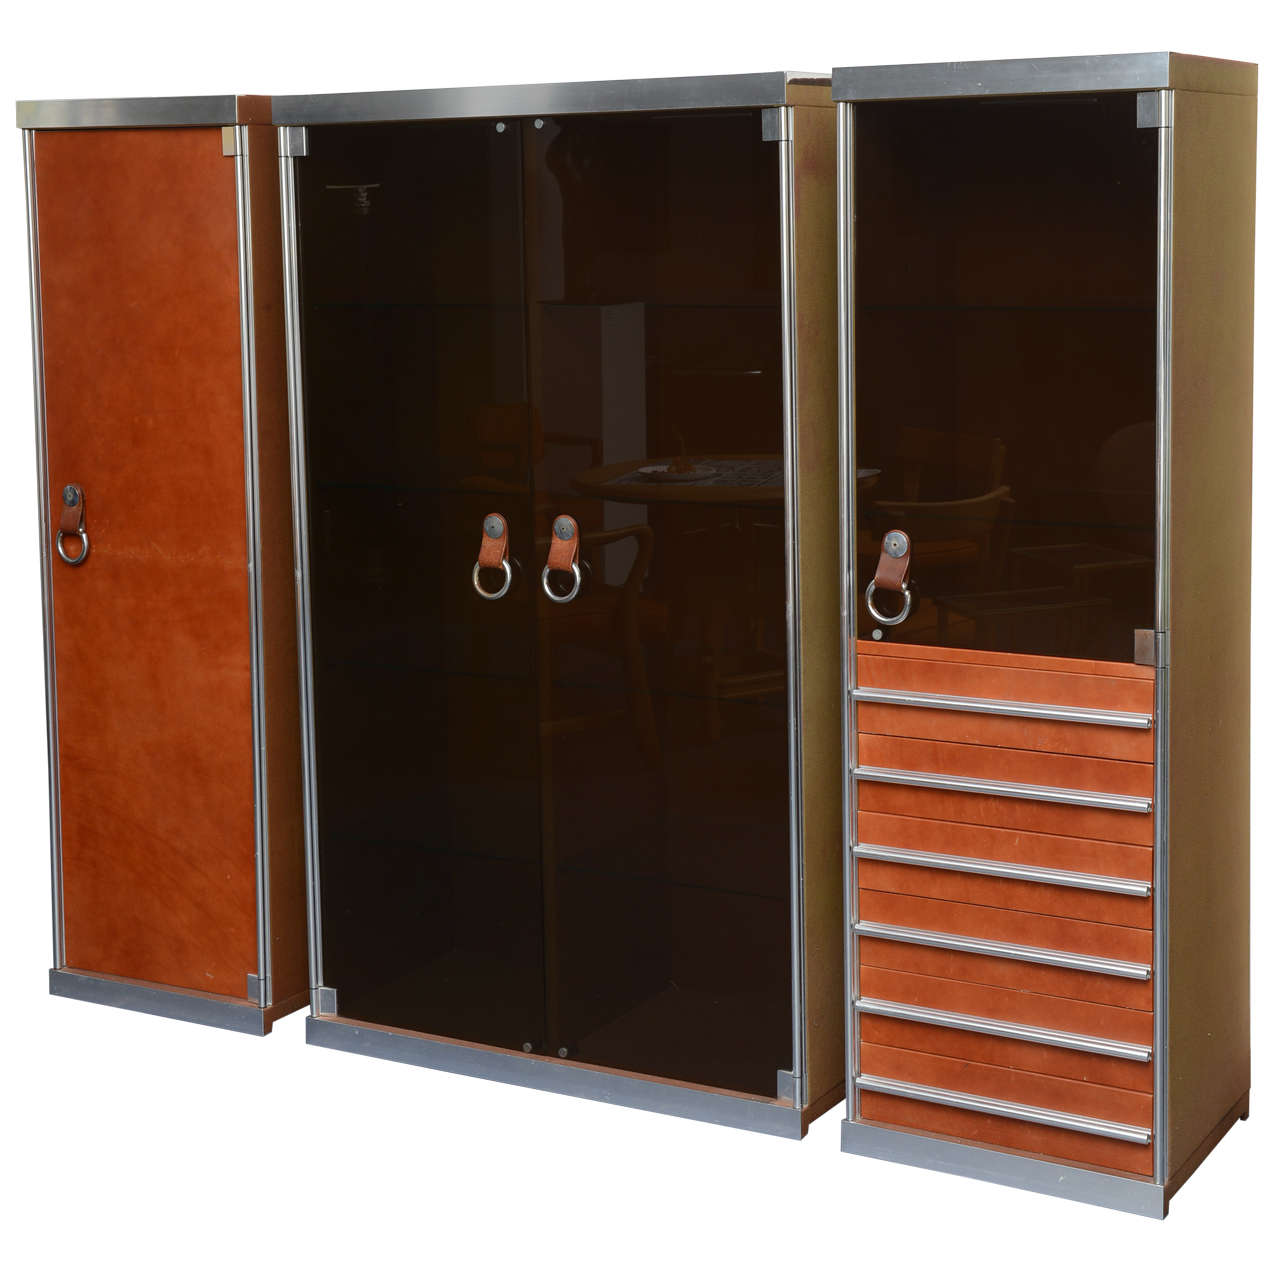 Italian Midcentury Guido Faleschini Set Of Cabinets Retailed By Hermès 1